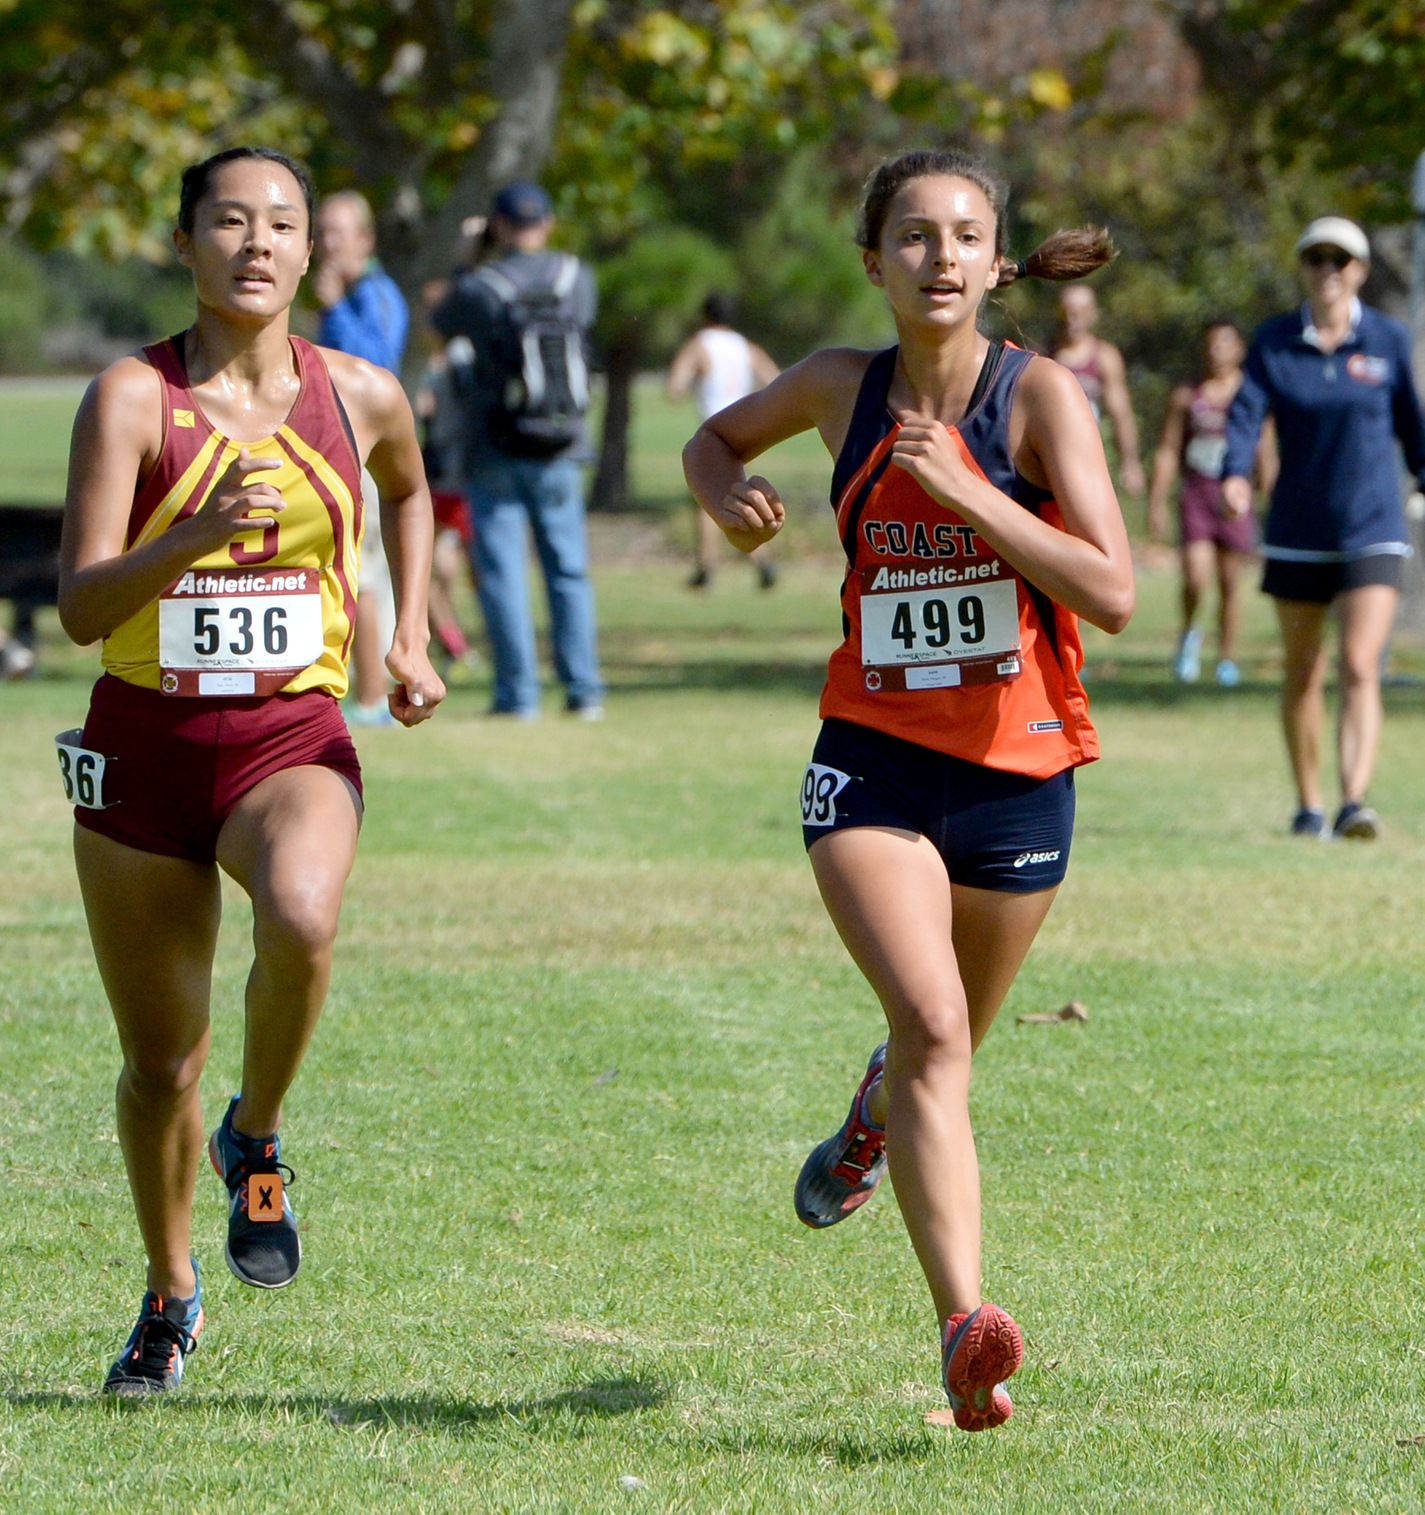 Pirate women claim fourth place at Brubaker Invitational